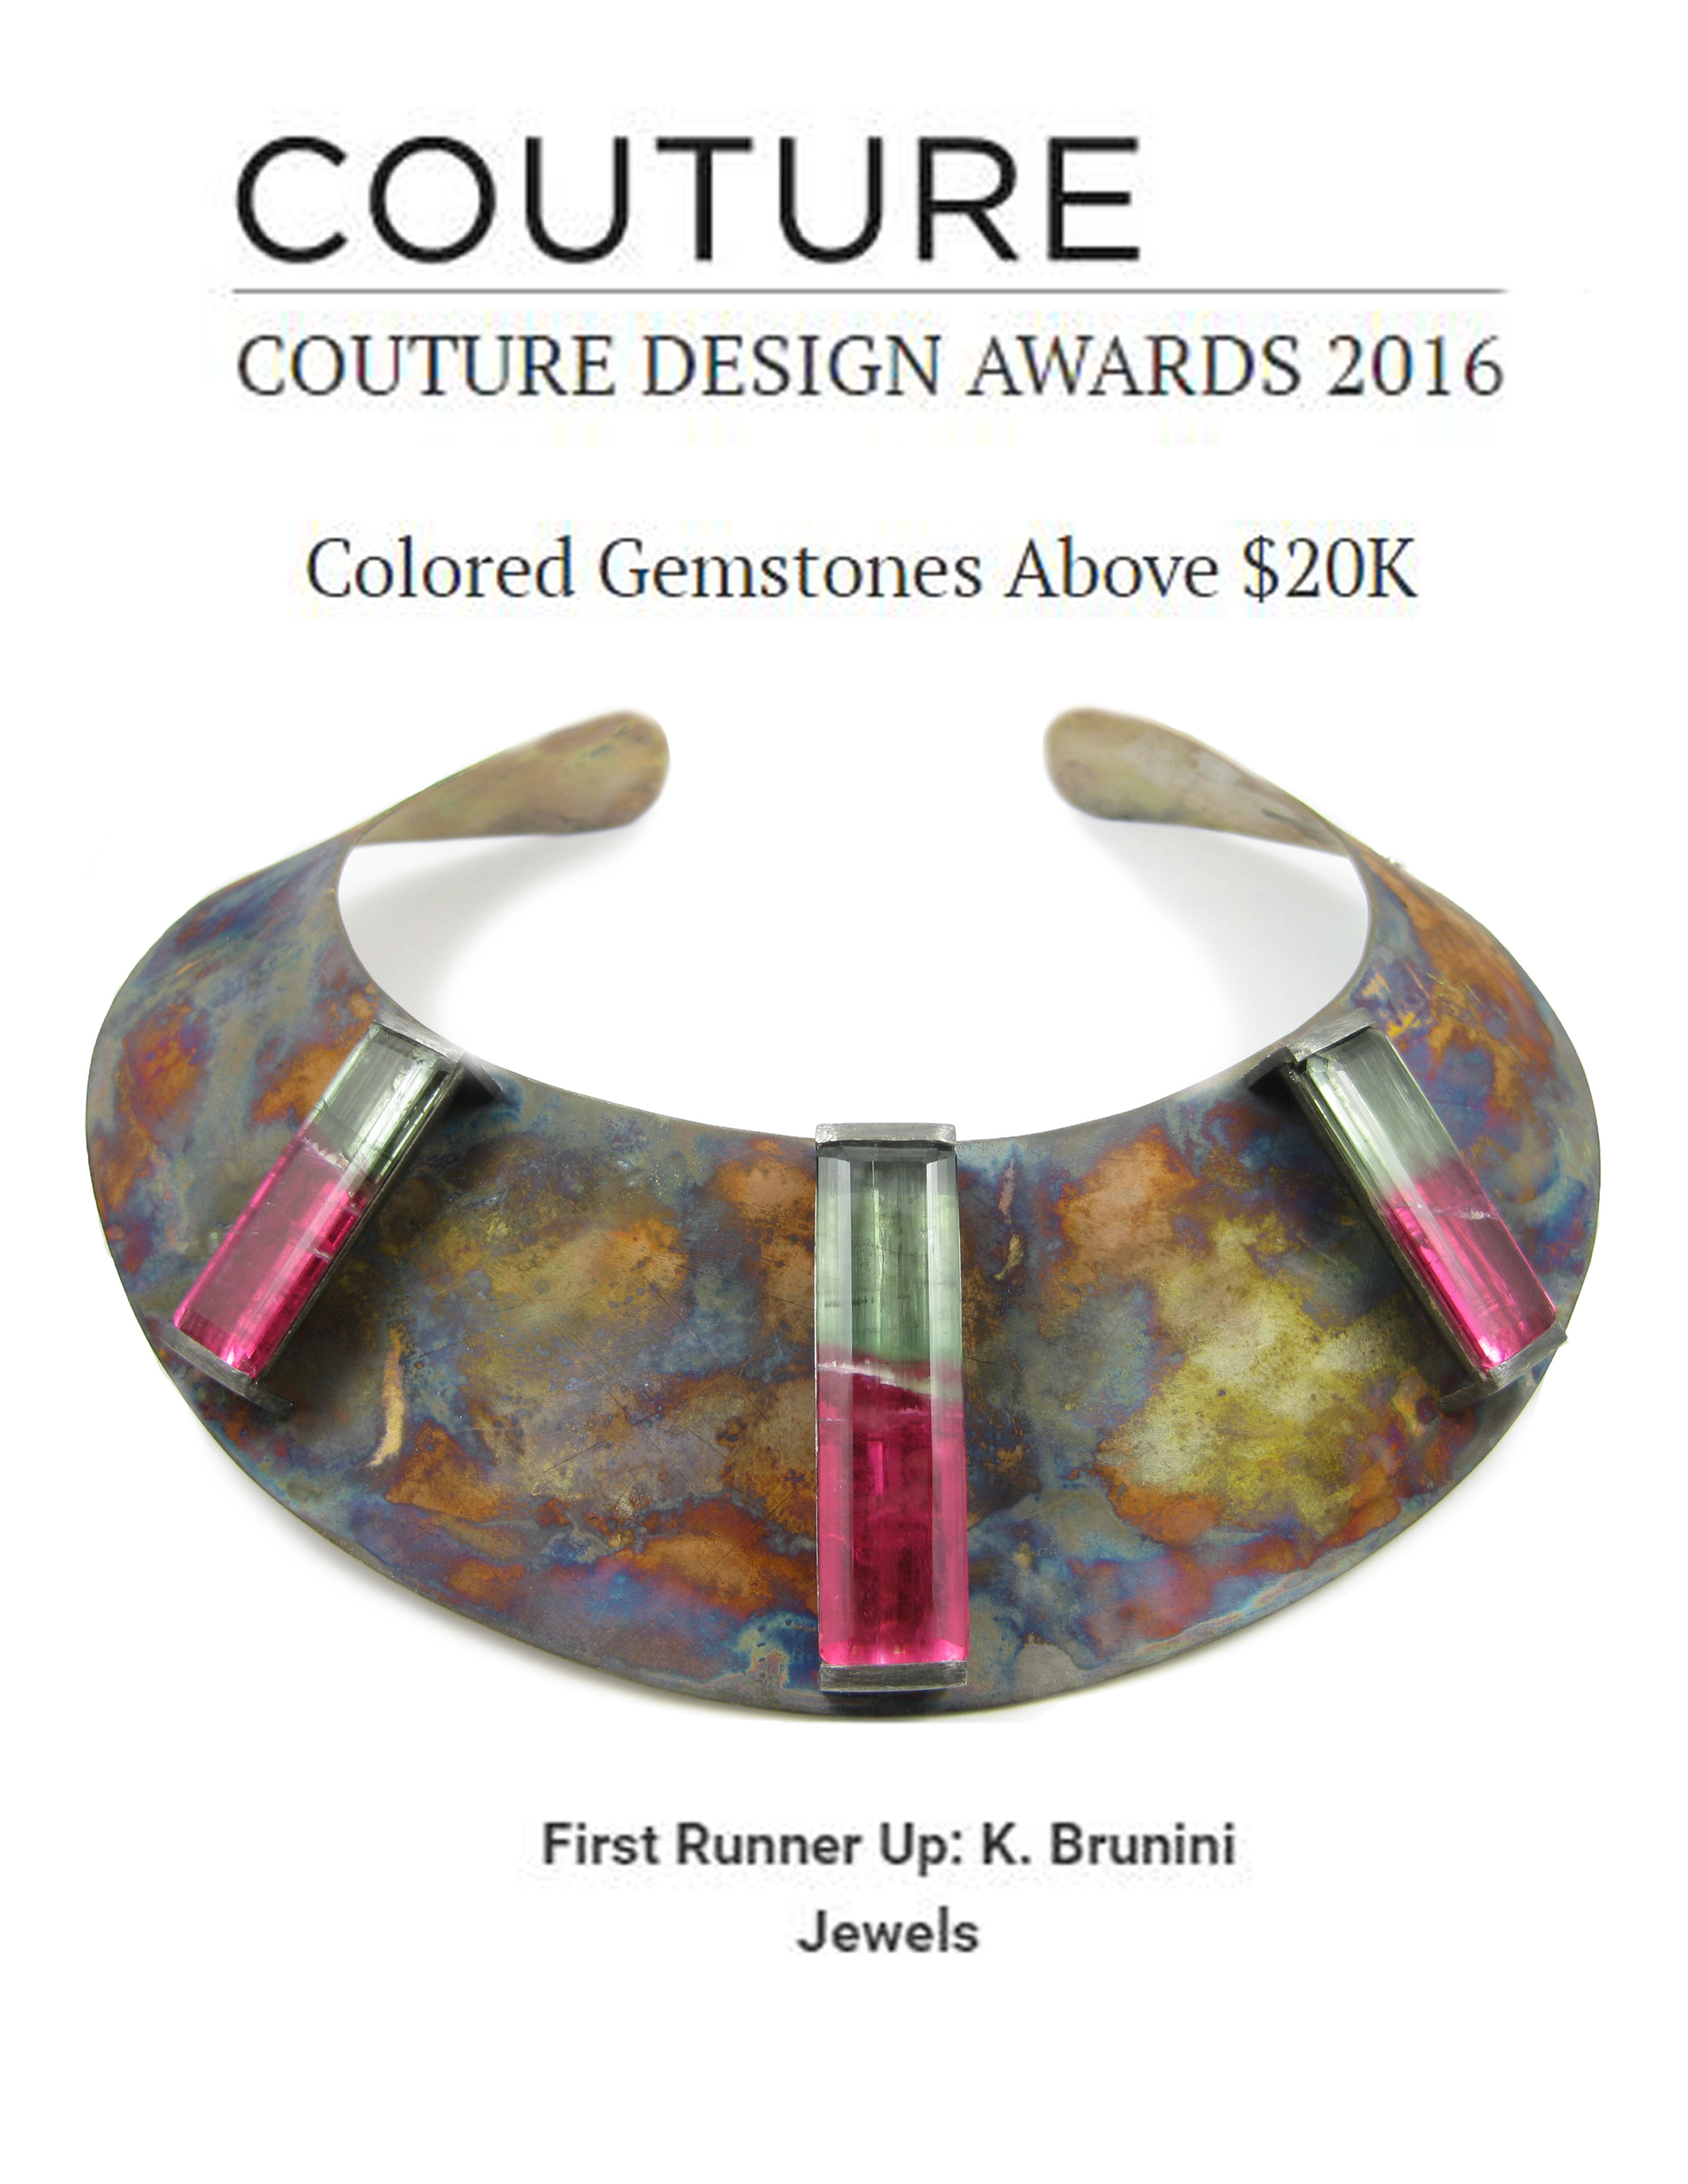 K Brunini, Couture, Design Awards, Collar, Necklace